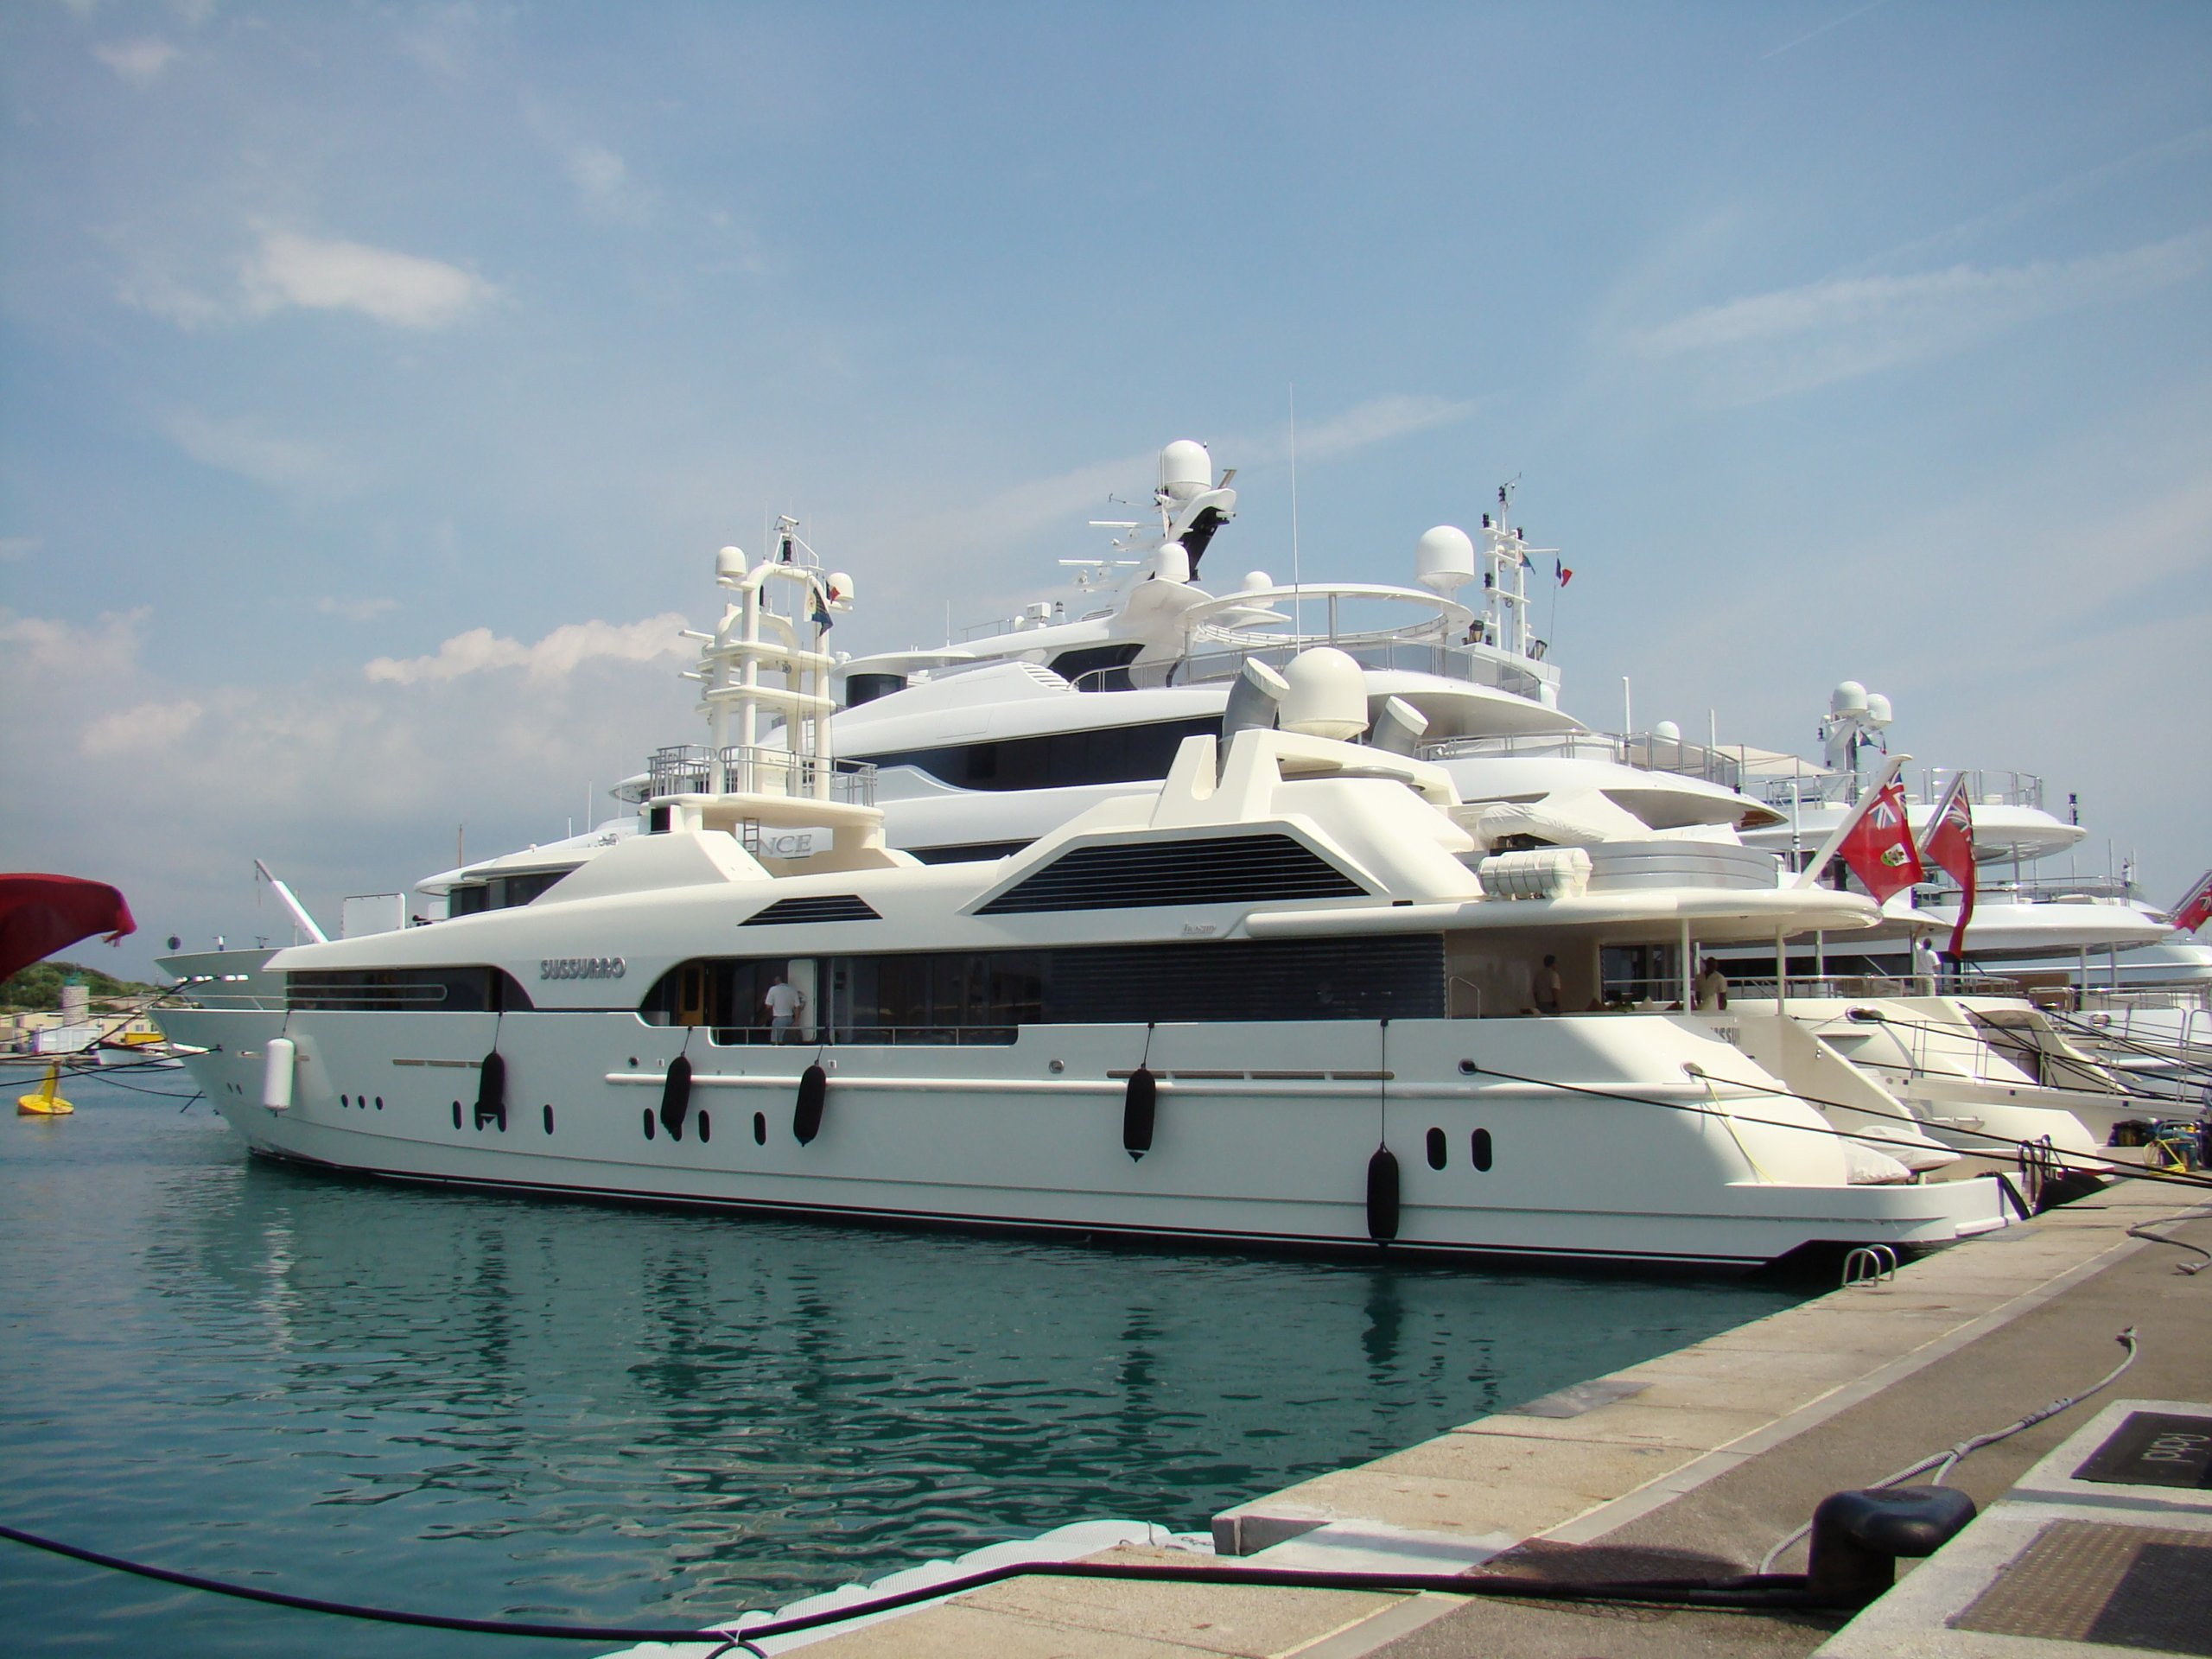 yacht Sussurro - Feadship - 1998